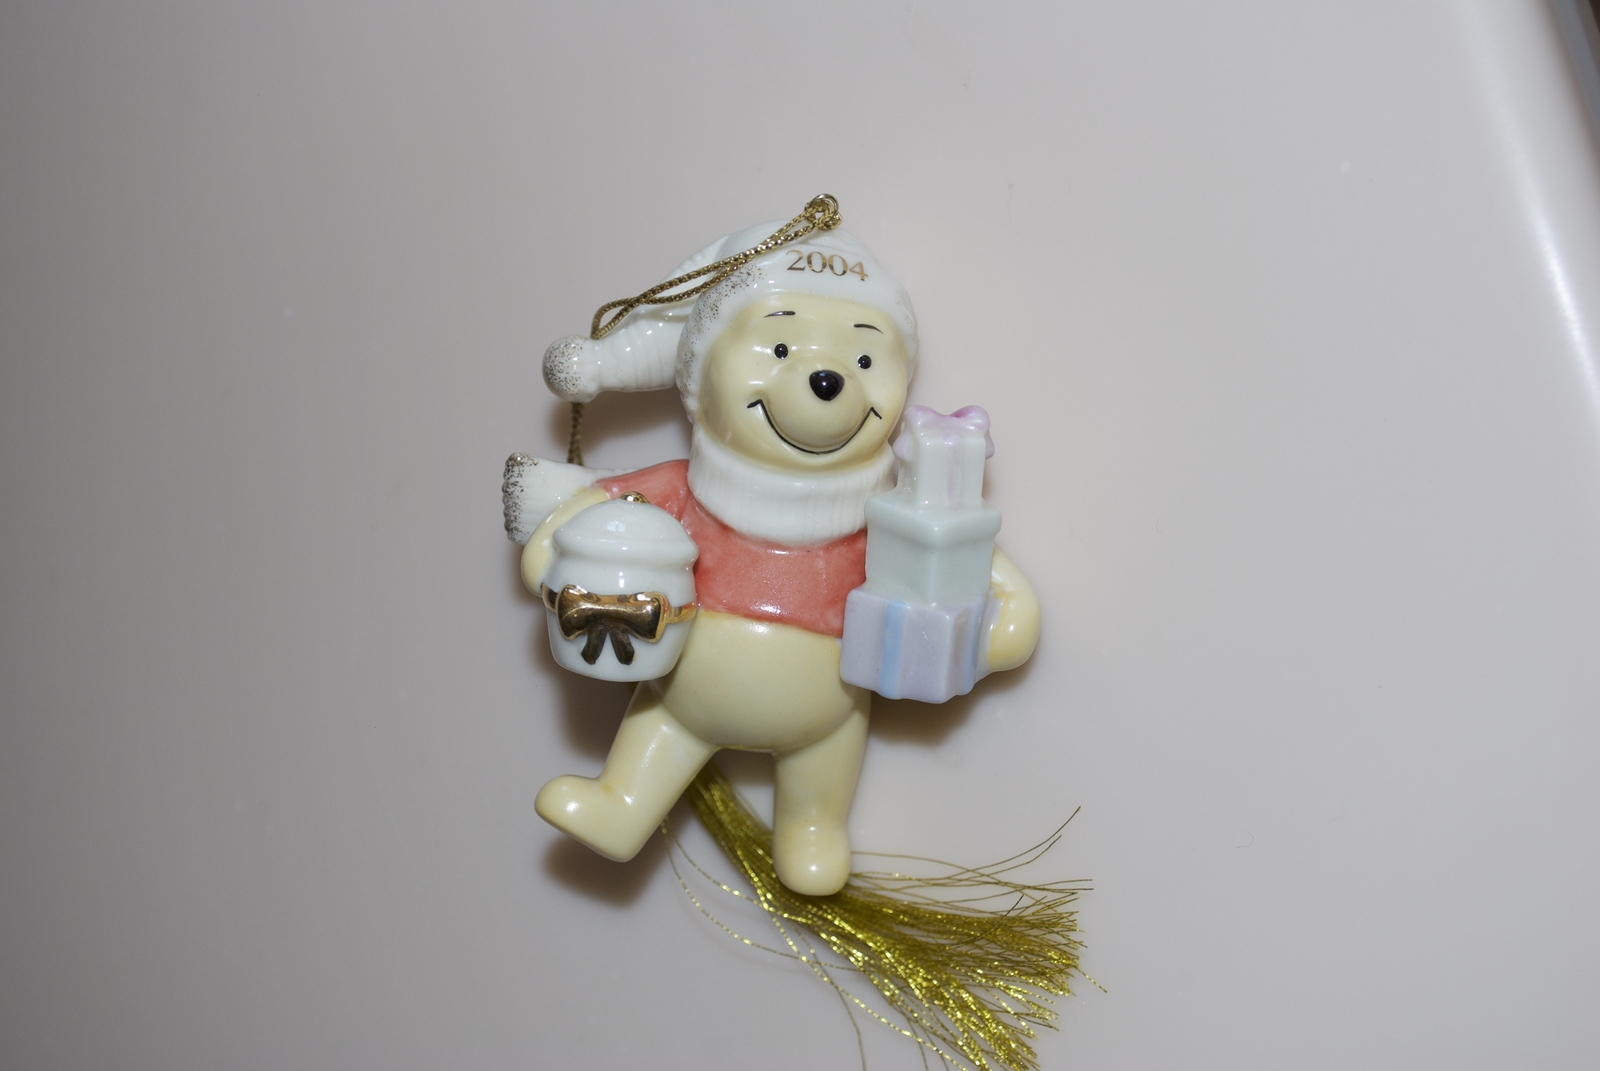 Winnie the Pooh Lenox DIsney 2002 Ornament with Honey Pot, Presents, Cookie Jar